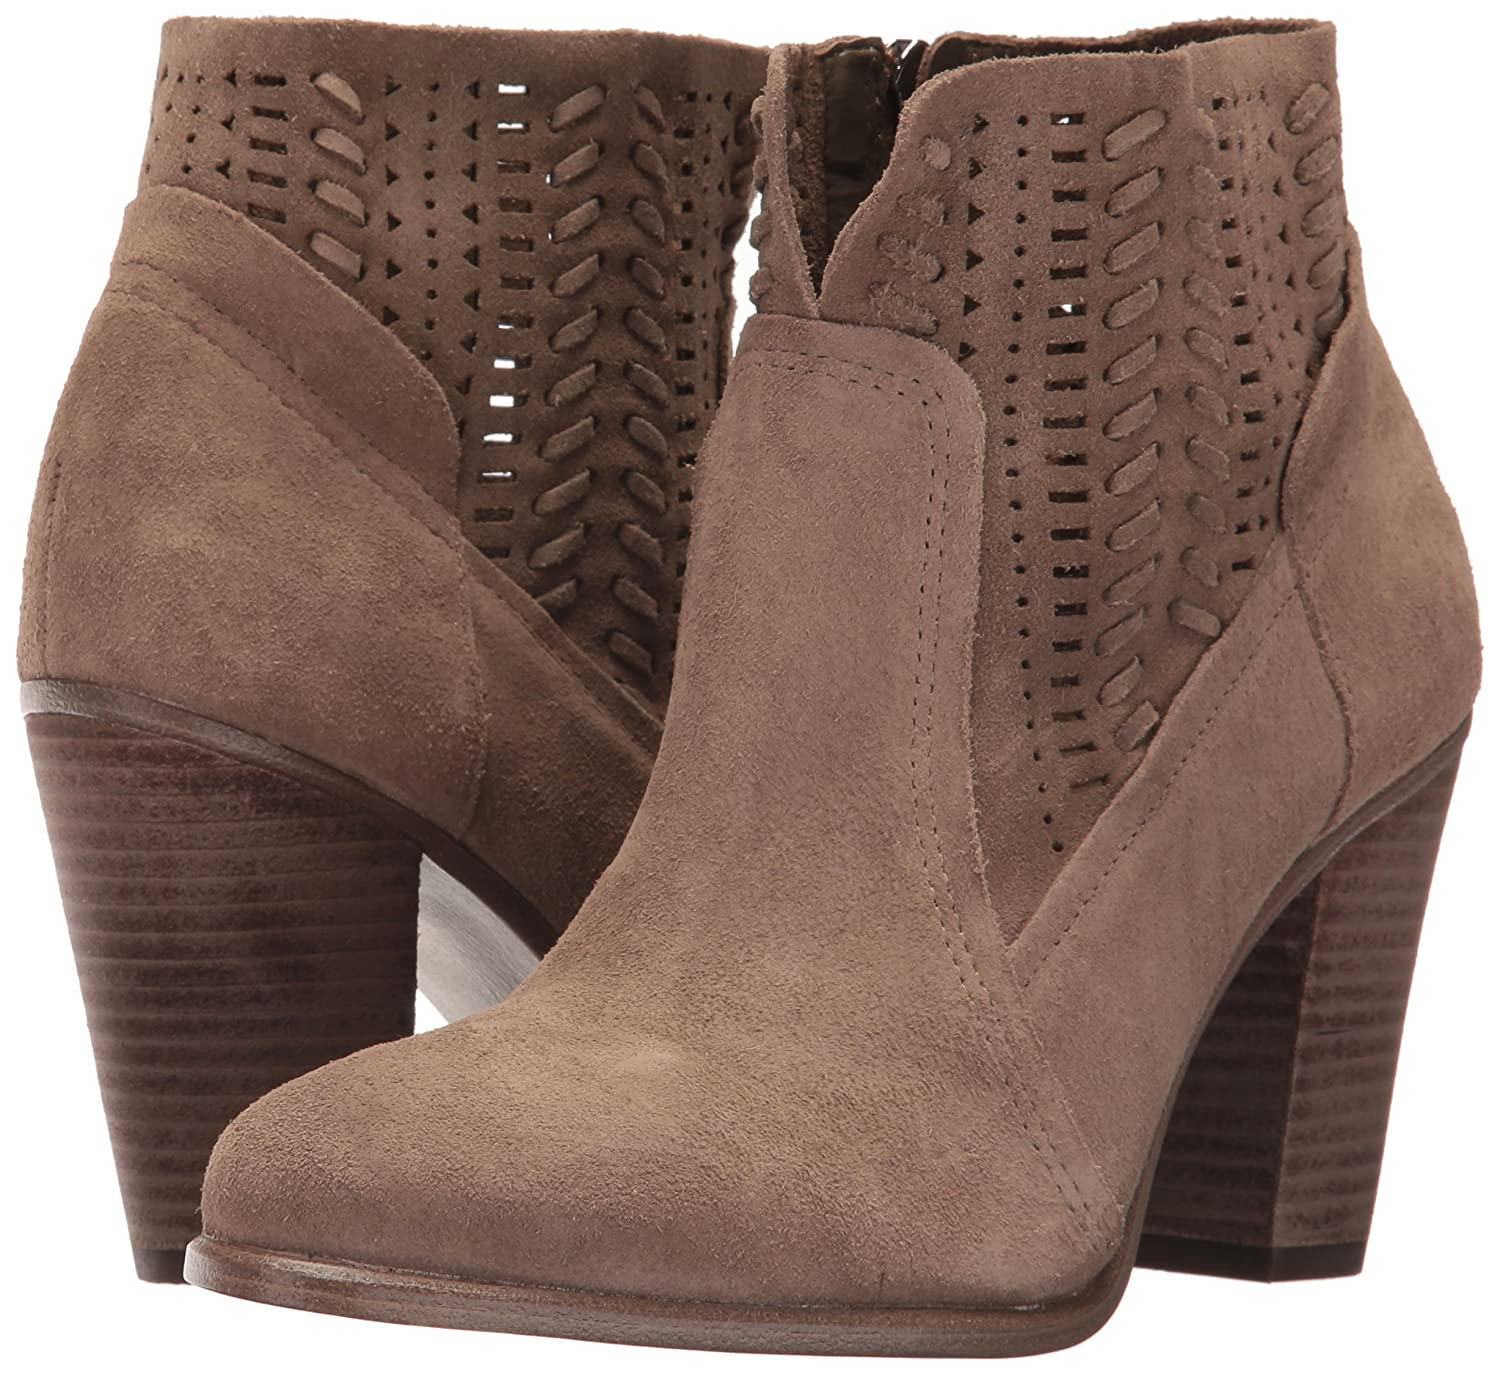 Vince Camuto Women's Fenyia Ankle Boot B0725W82H6 5.5 B(M) US|Foxy